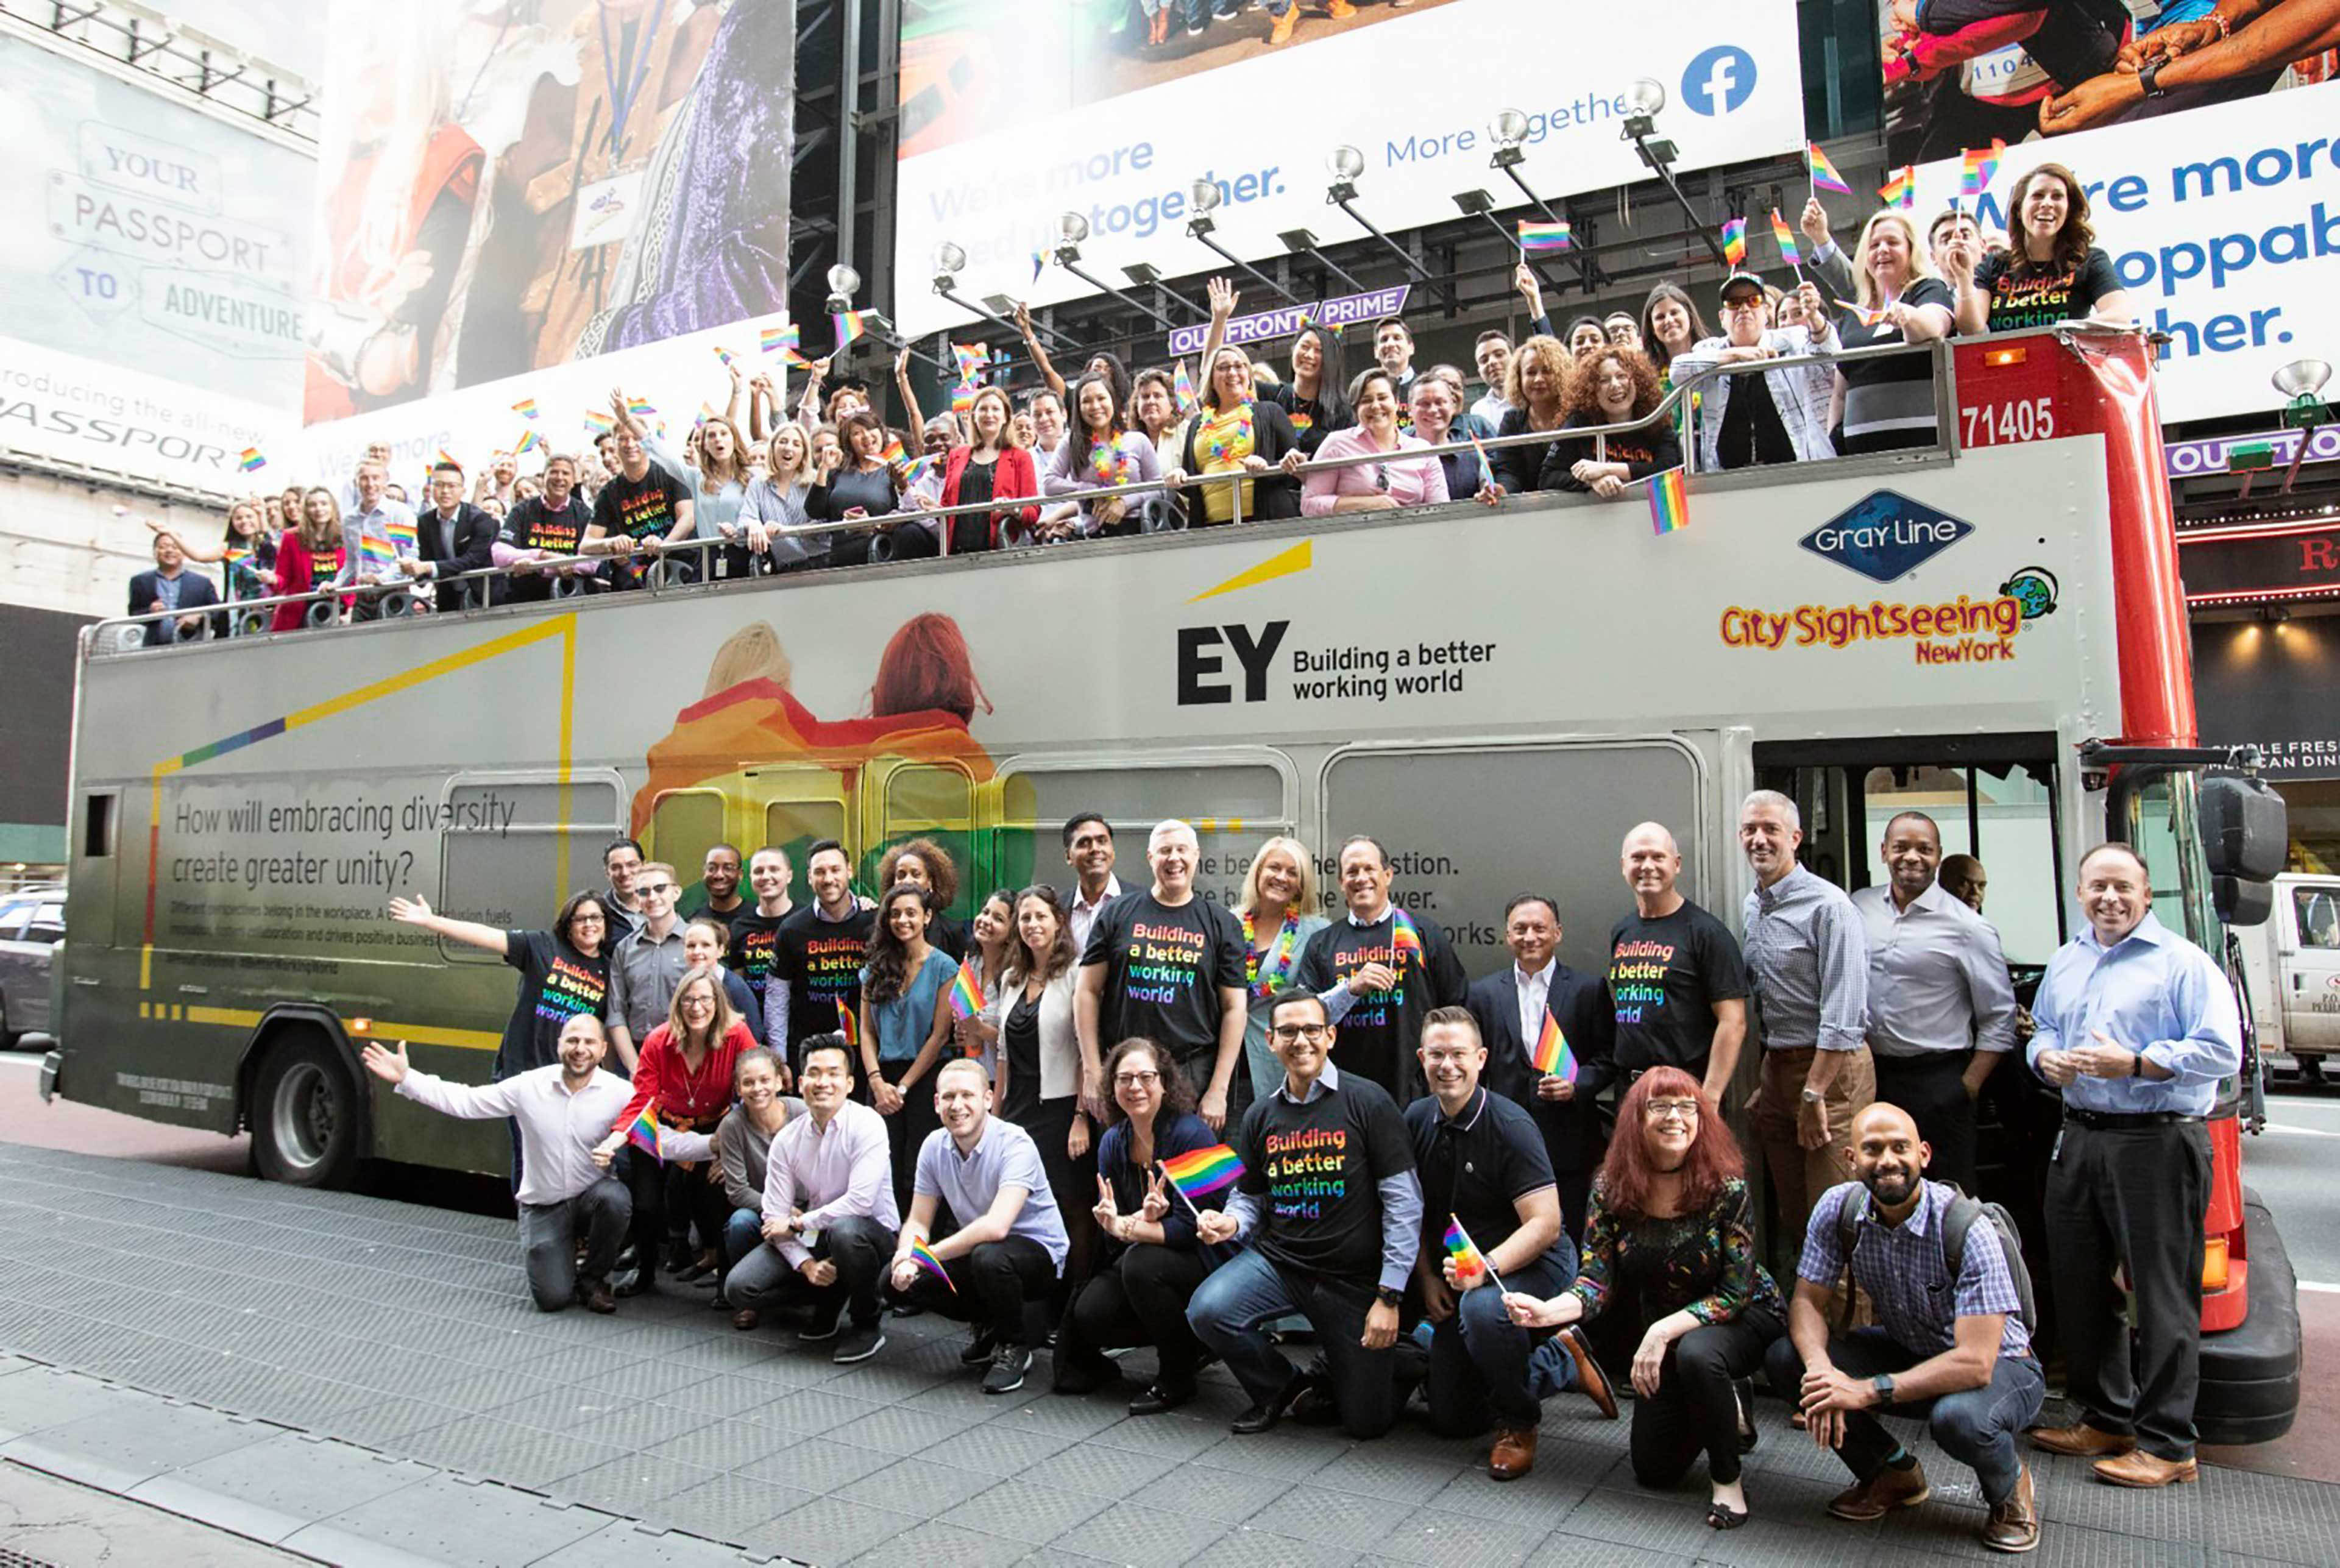 EY - Group standing in front of unity branded bus